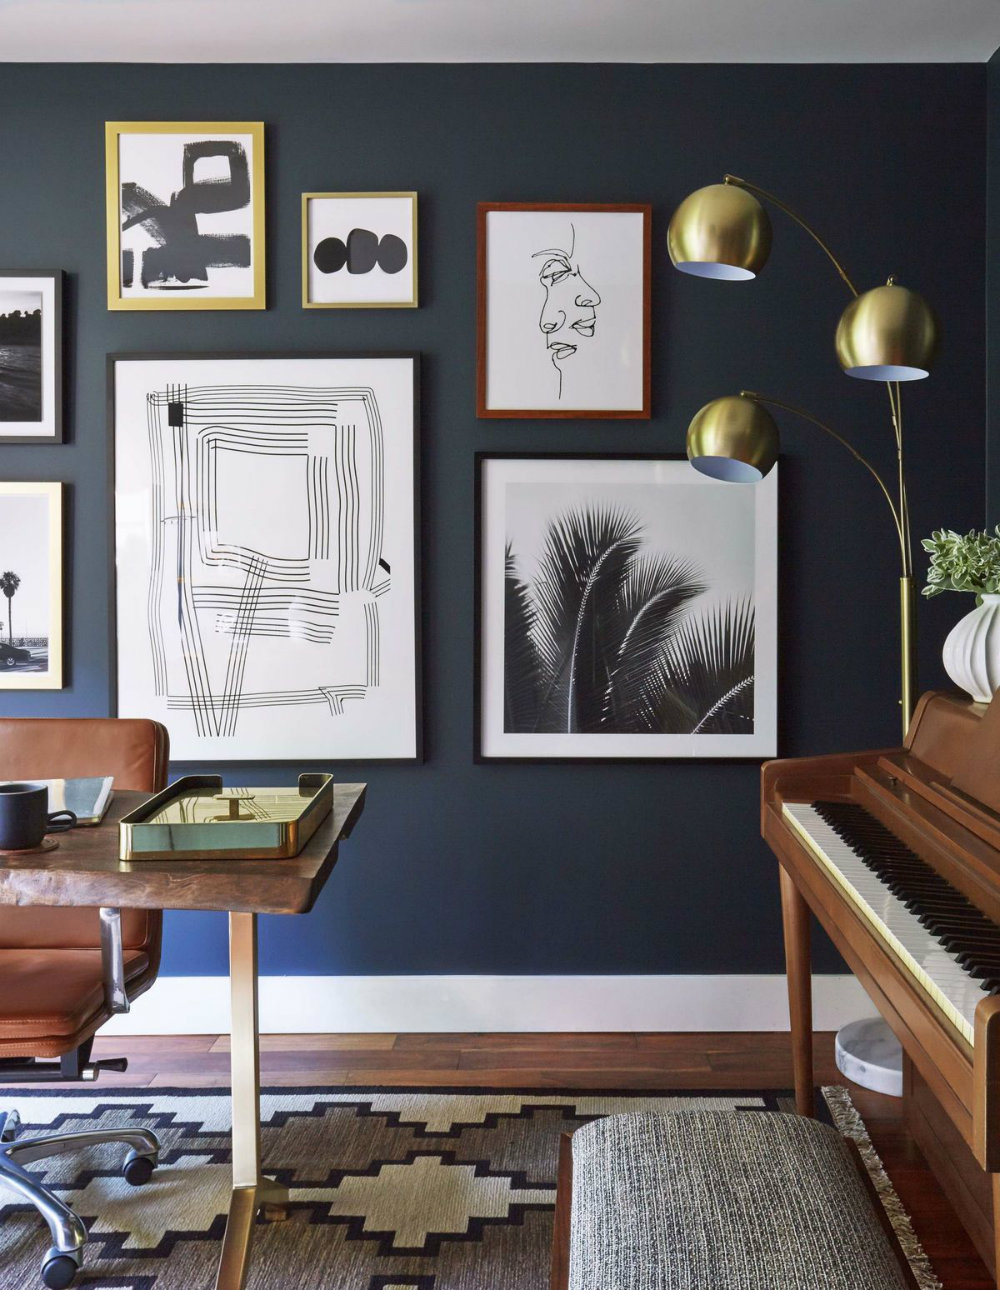 6 Ways to Use the Trendy Navy Blue and Gold Color Scheme 03 navy blue The Trendy Navy Blue and Gold Color Scheme – 6 ways to use it 6 Ways to Use the Trendy Navy Blue and Gold Color Scheme 03